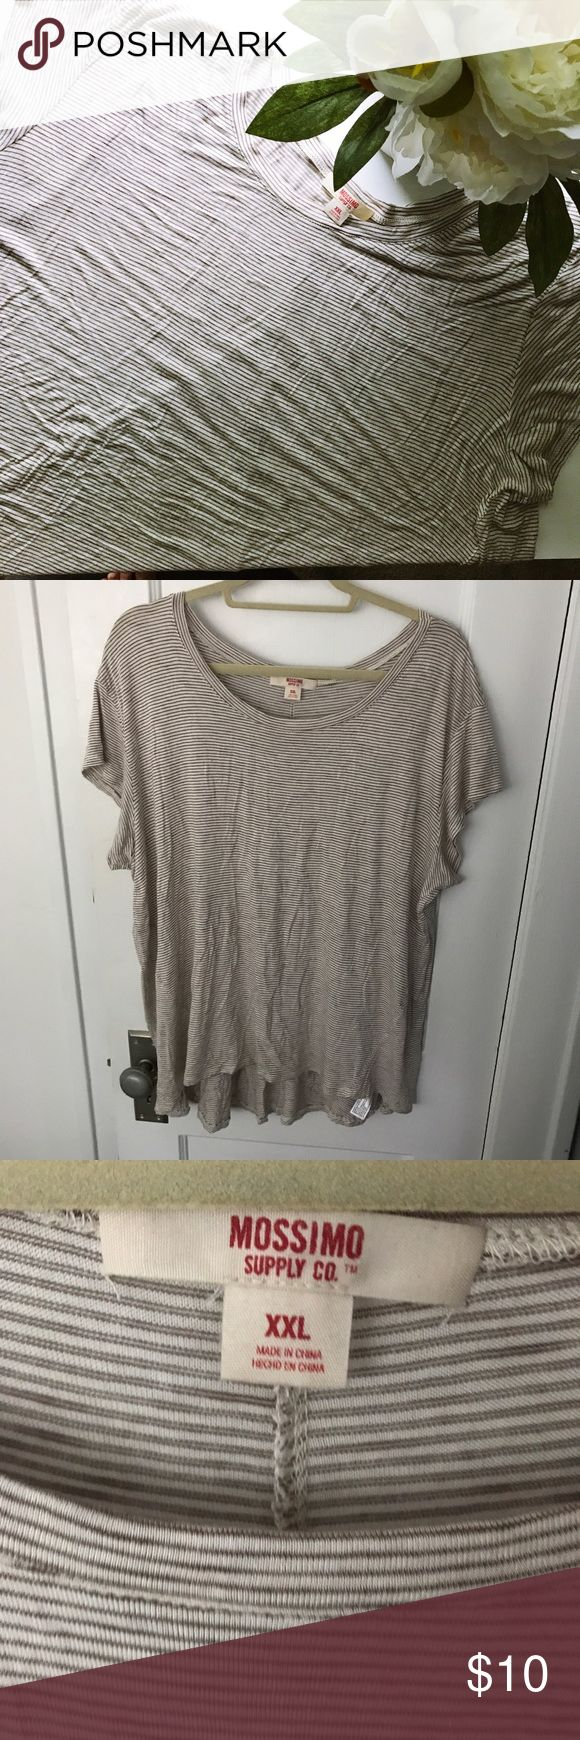 Flowy tan and cream short sleeved top Relaxed fit tshirt with slight lo-hi hem. Nice neutral cream and tan stripe. Perfect with a pair of shorts in summer and jeans in the fall. Mossimo Supply Co. Tops Tees - Short Sleeve